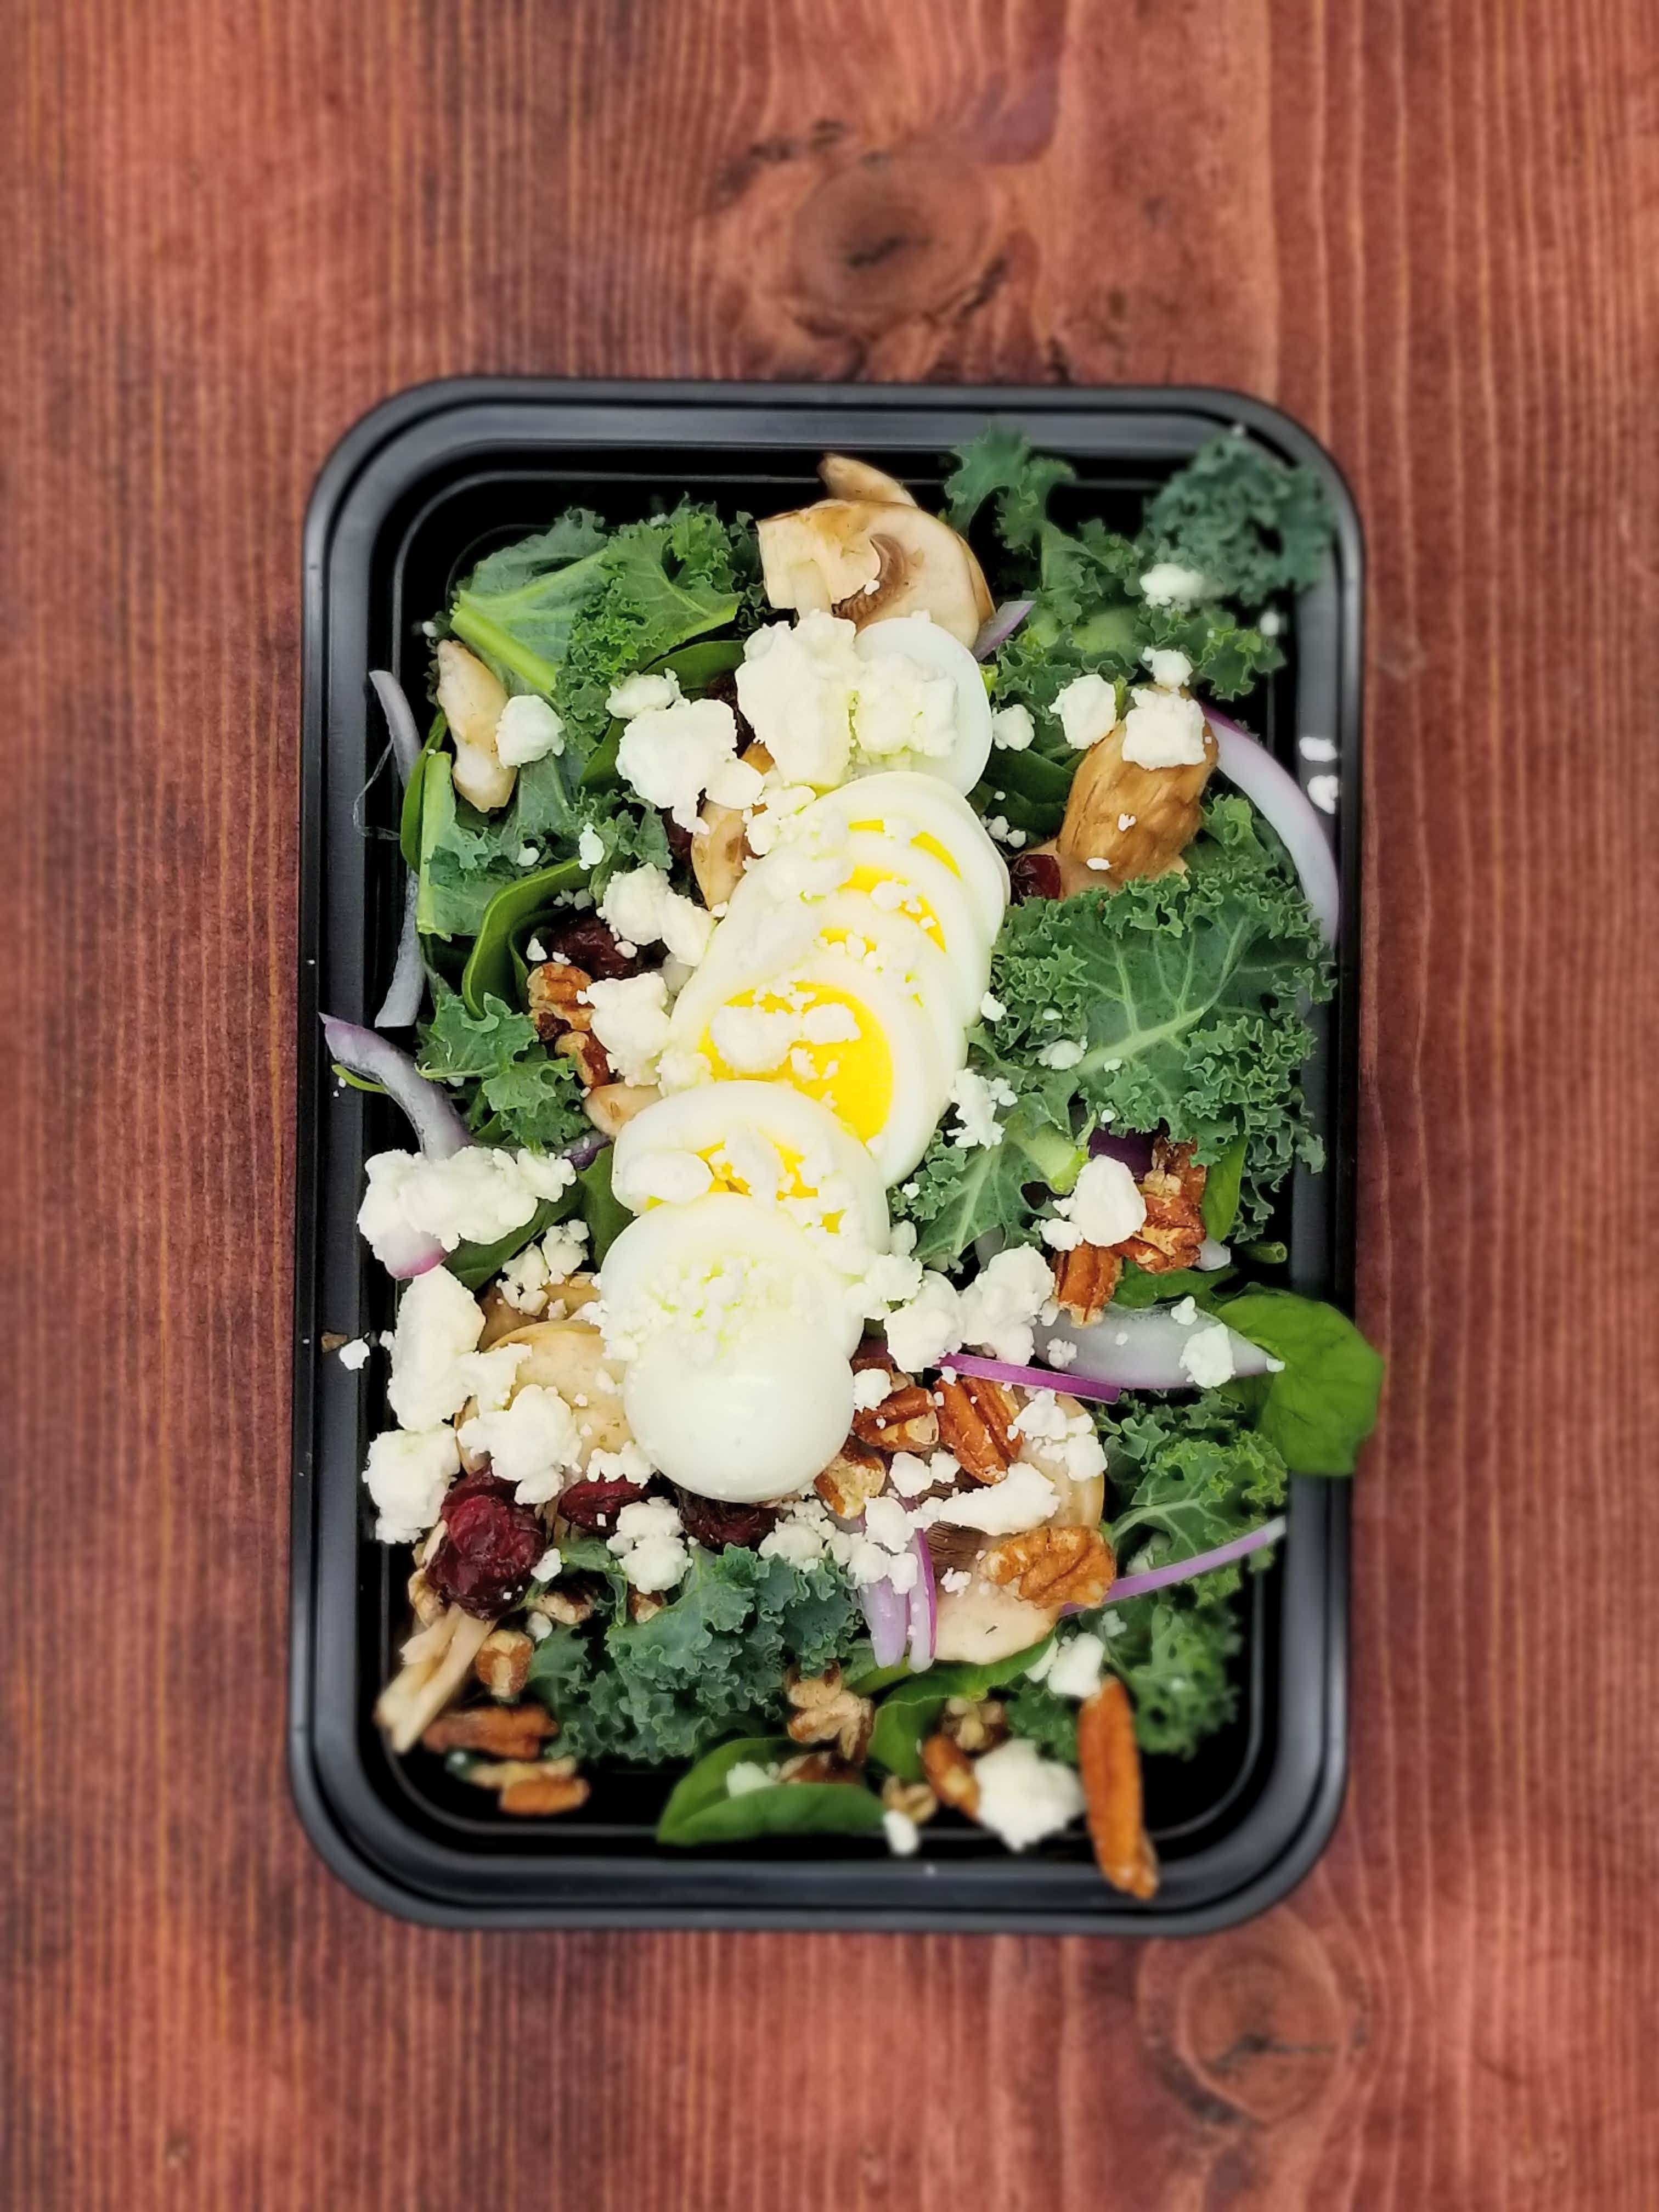 Delivered right to your door every day healthy meals in